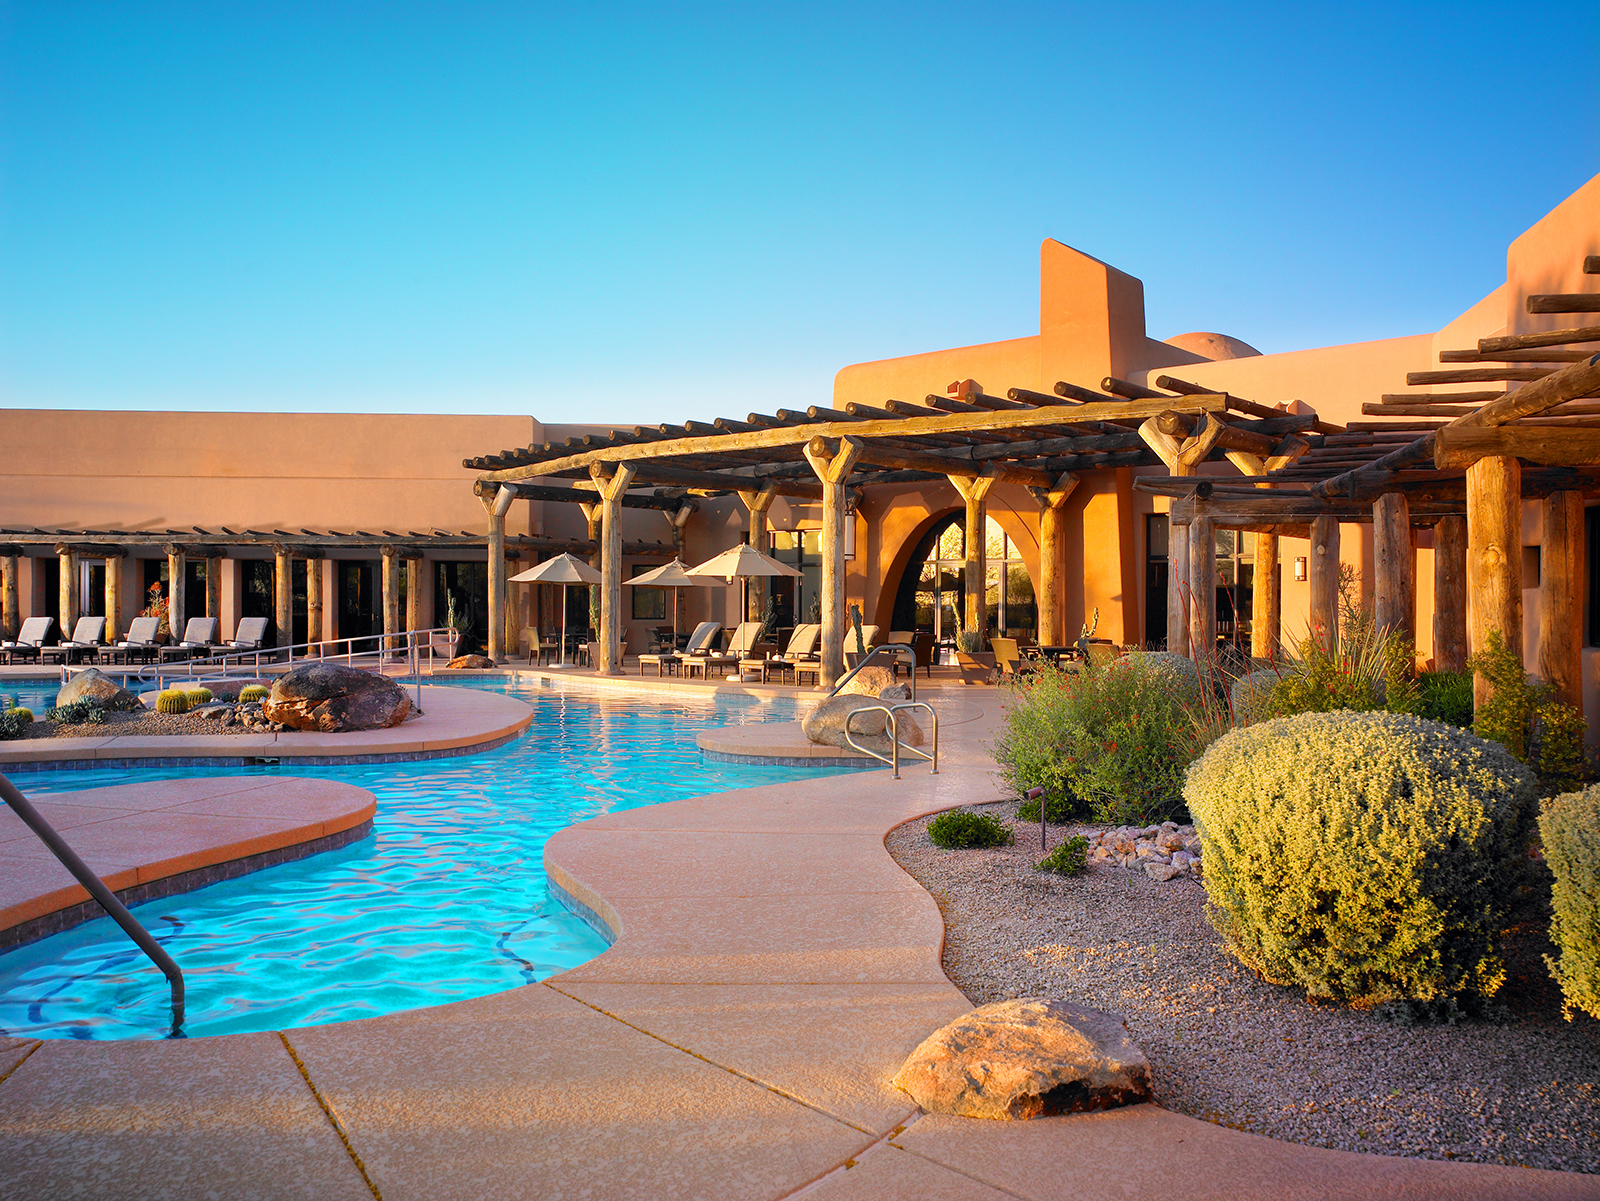 Aji Pool at Sheraton Grand Wild Horse Pass